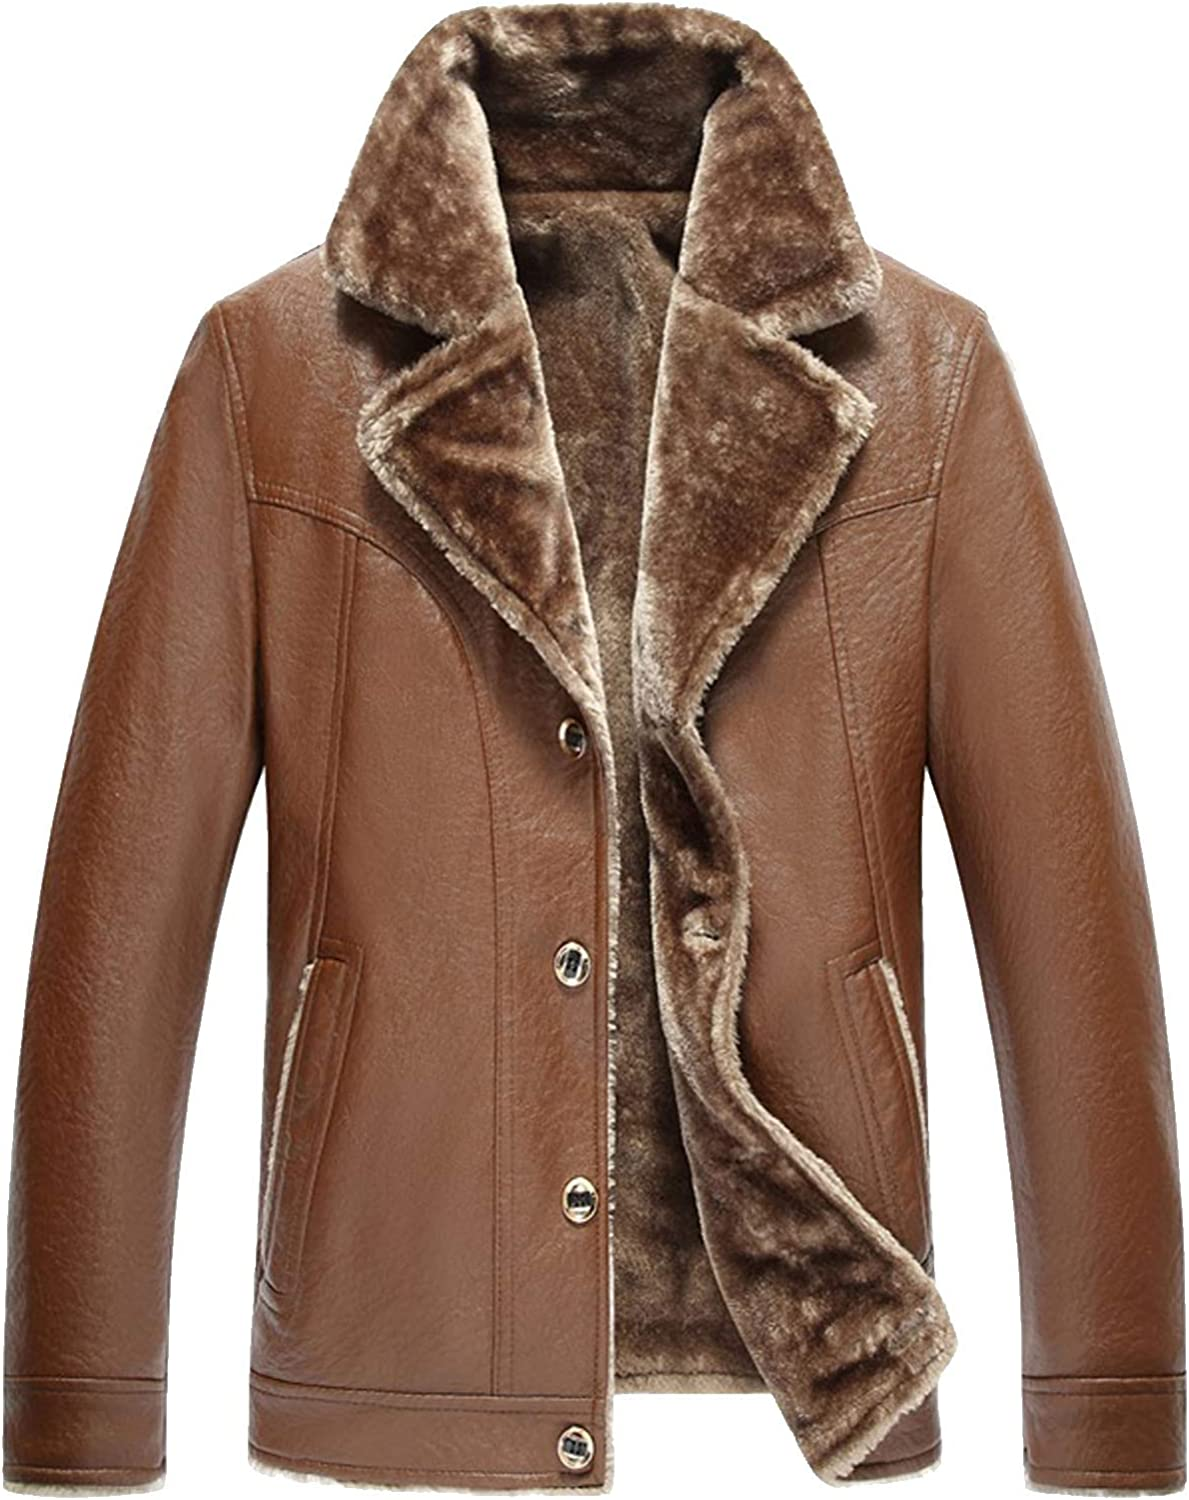 Flygo Men Thick Faux Sherpa Fleece Lined Leather PU Moto Biker Jacket Coat with Button